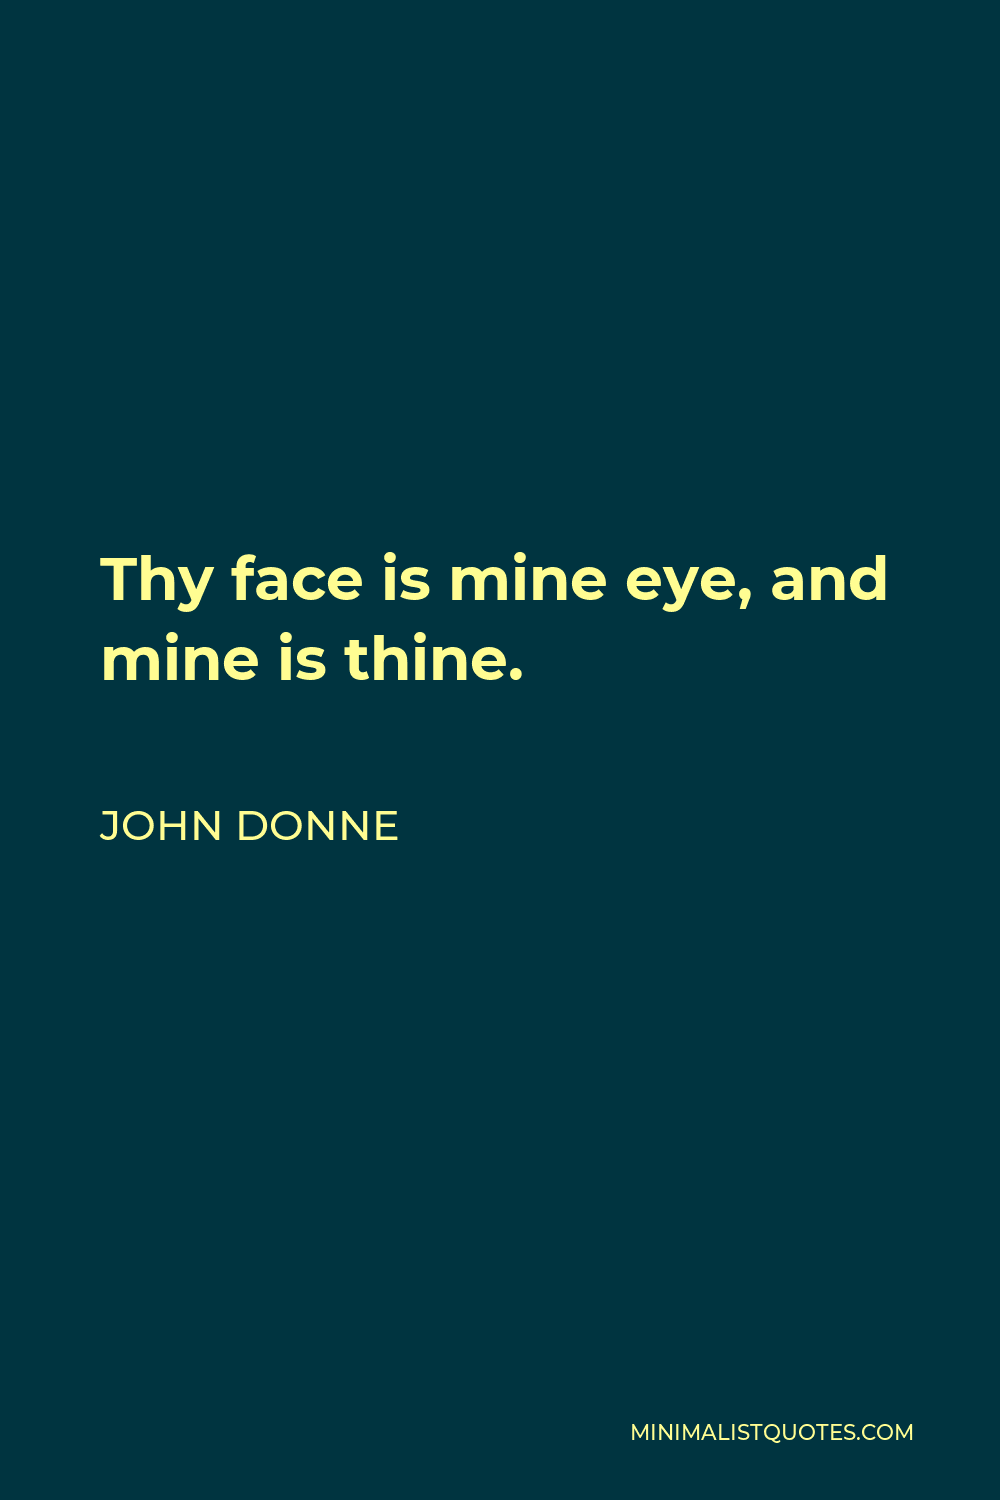 John Donne Quote - Thy face is mine eye, and mine is thine.